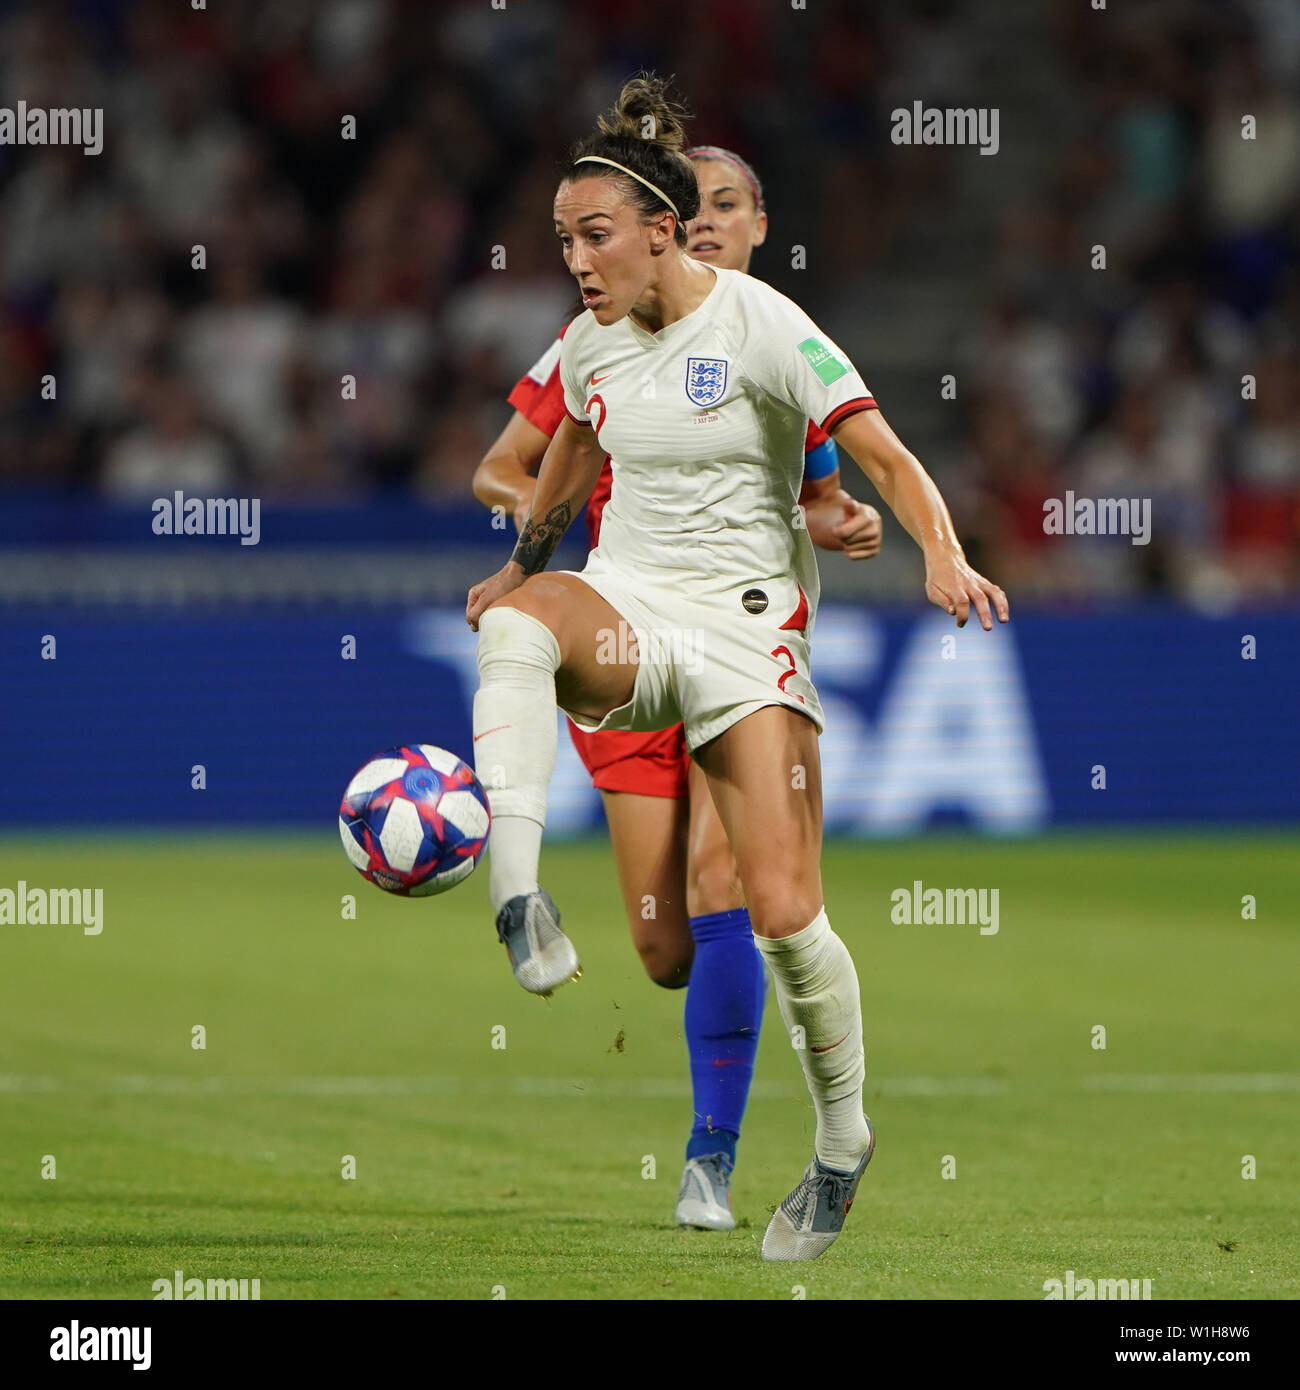 2 july 2019 Lyon, France FIFA World Cup Women 2019 England v USA   Lucy Bronze of England Stock Photo